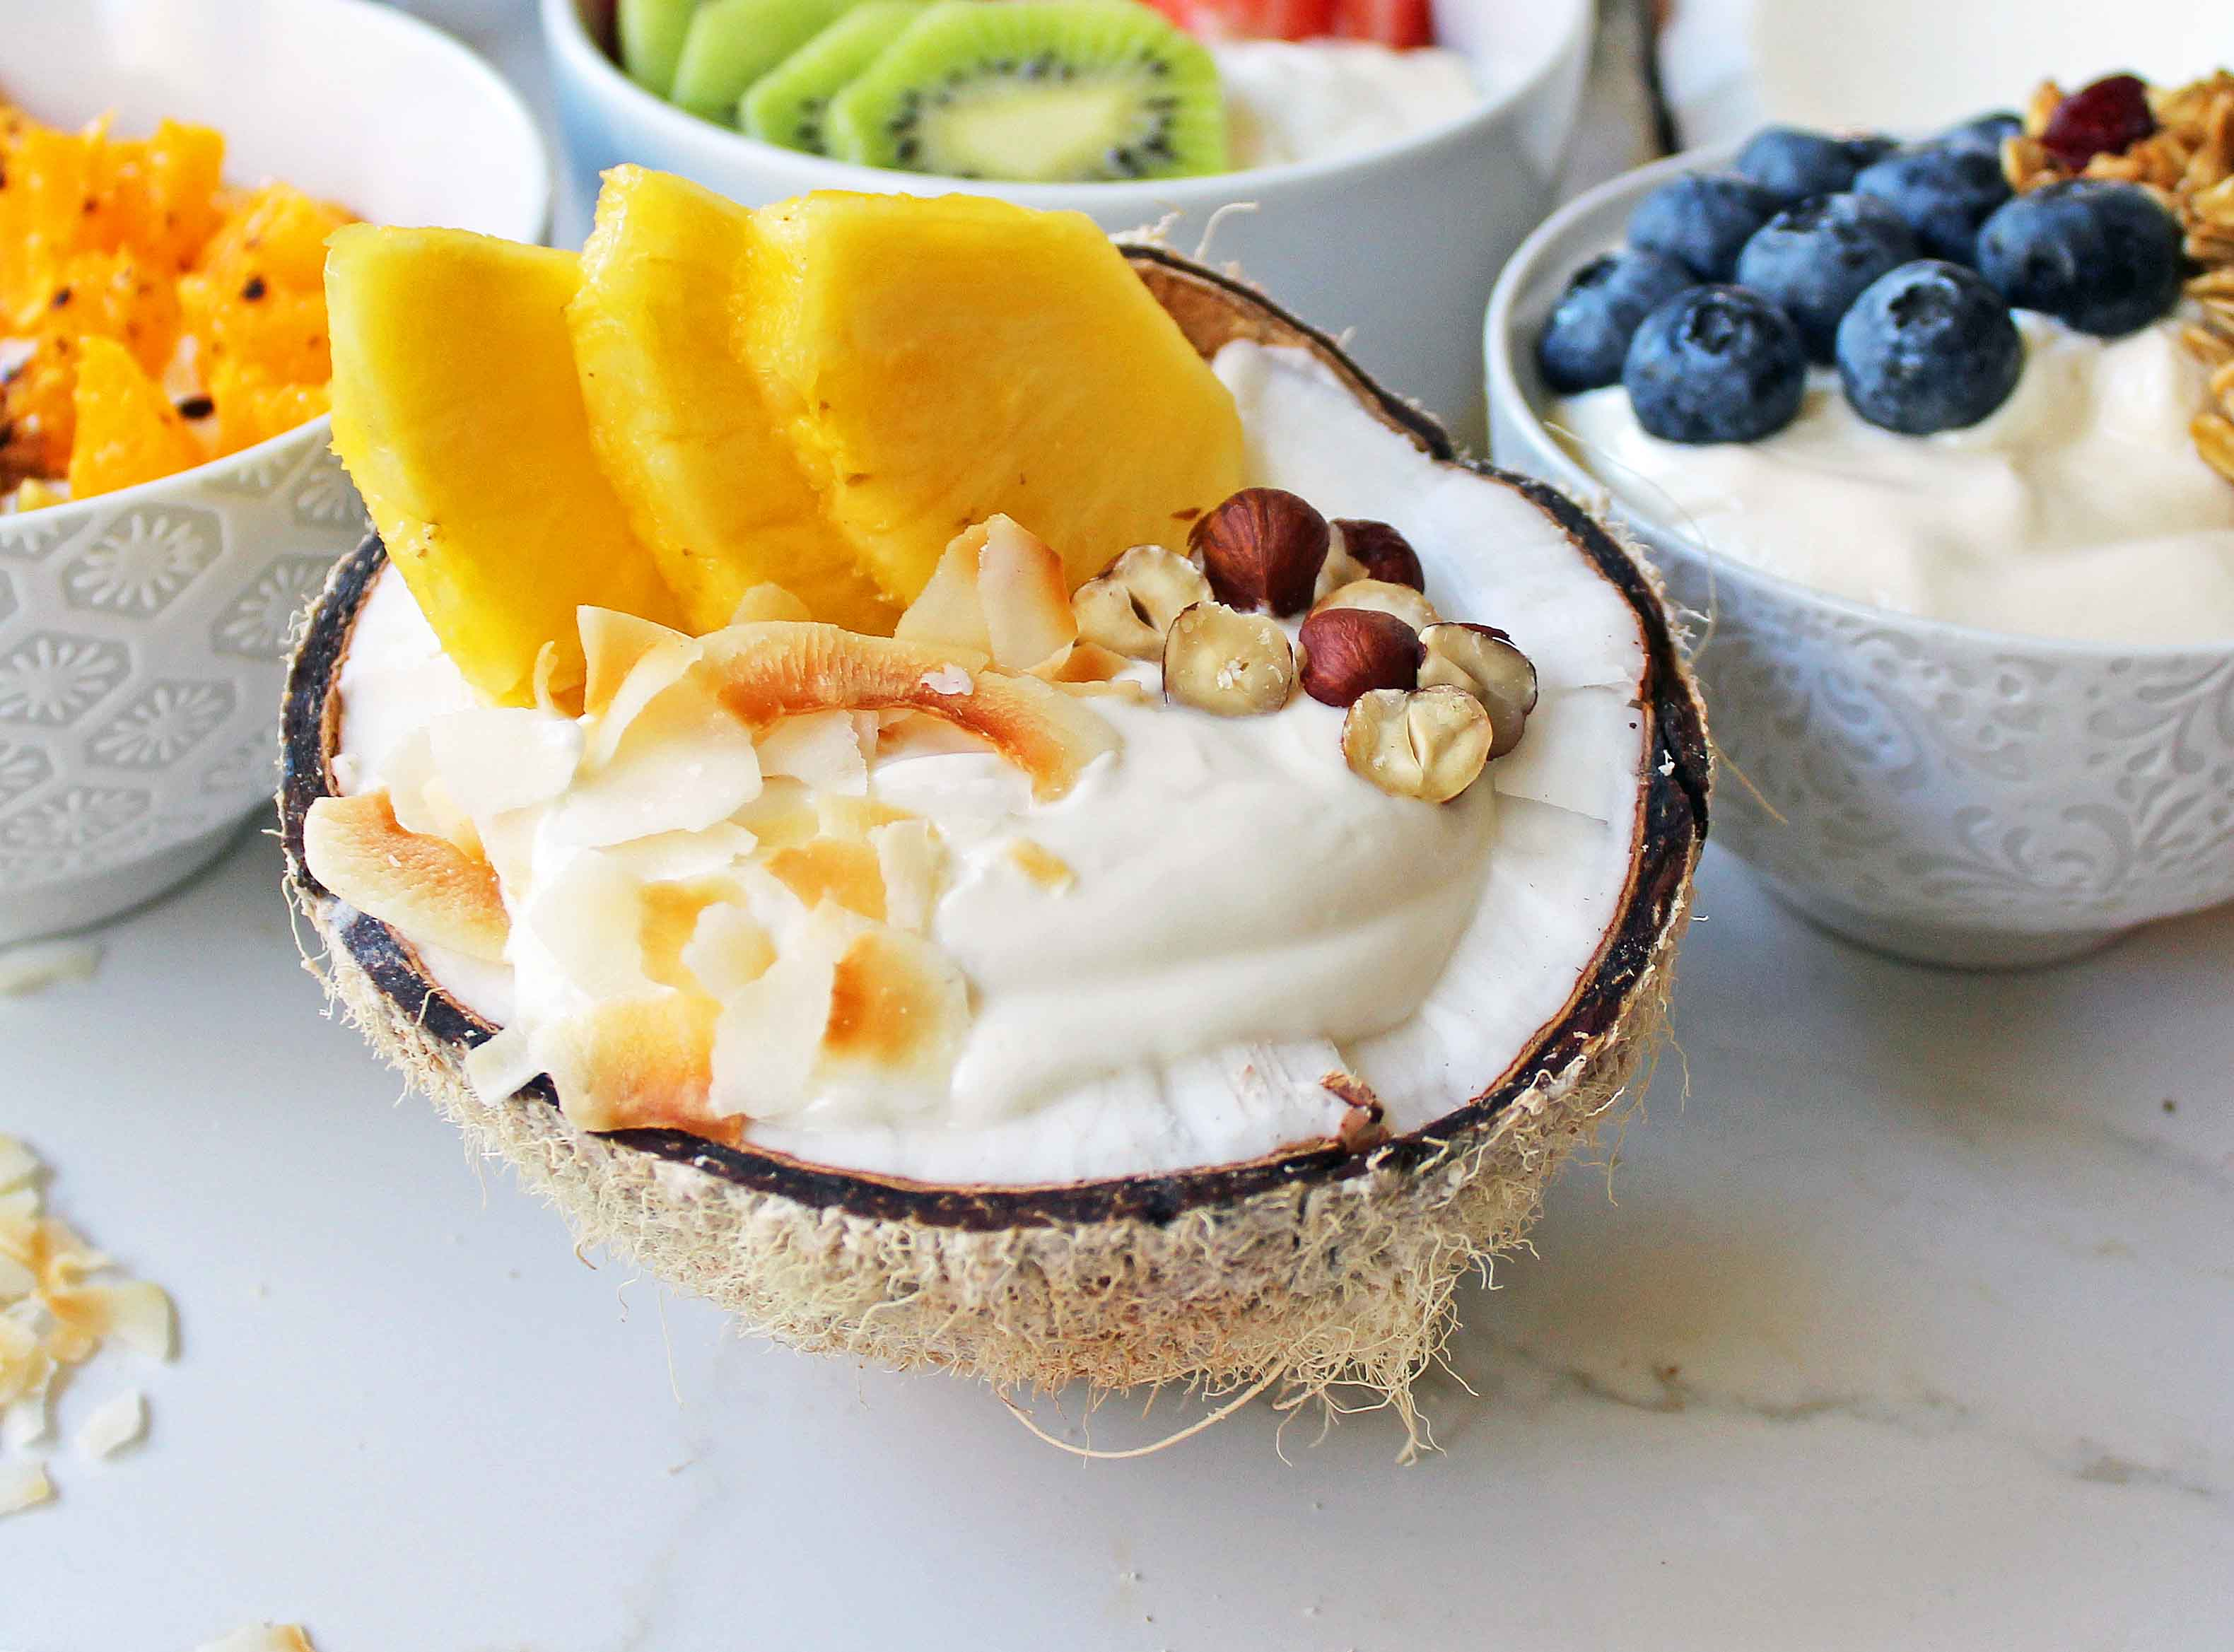 Greek Yogurt Breakfast Bowls with Toppings by Modern Honey. Healthy Greek Yogurt topped with fresh fruits, nuts, and honey. It's a perfect breakfast to start the day!